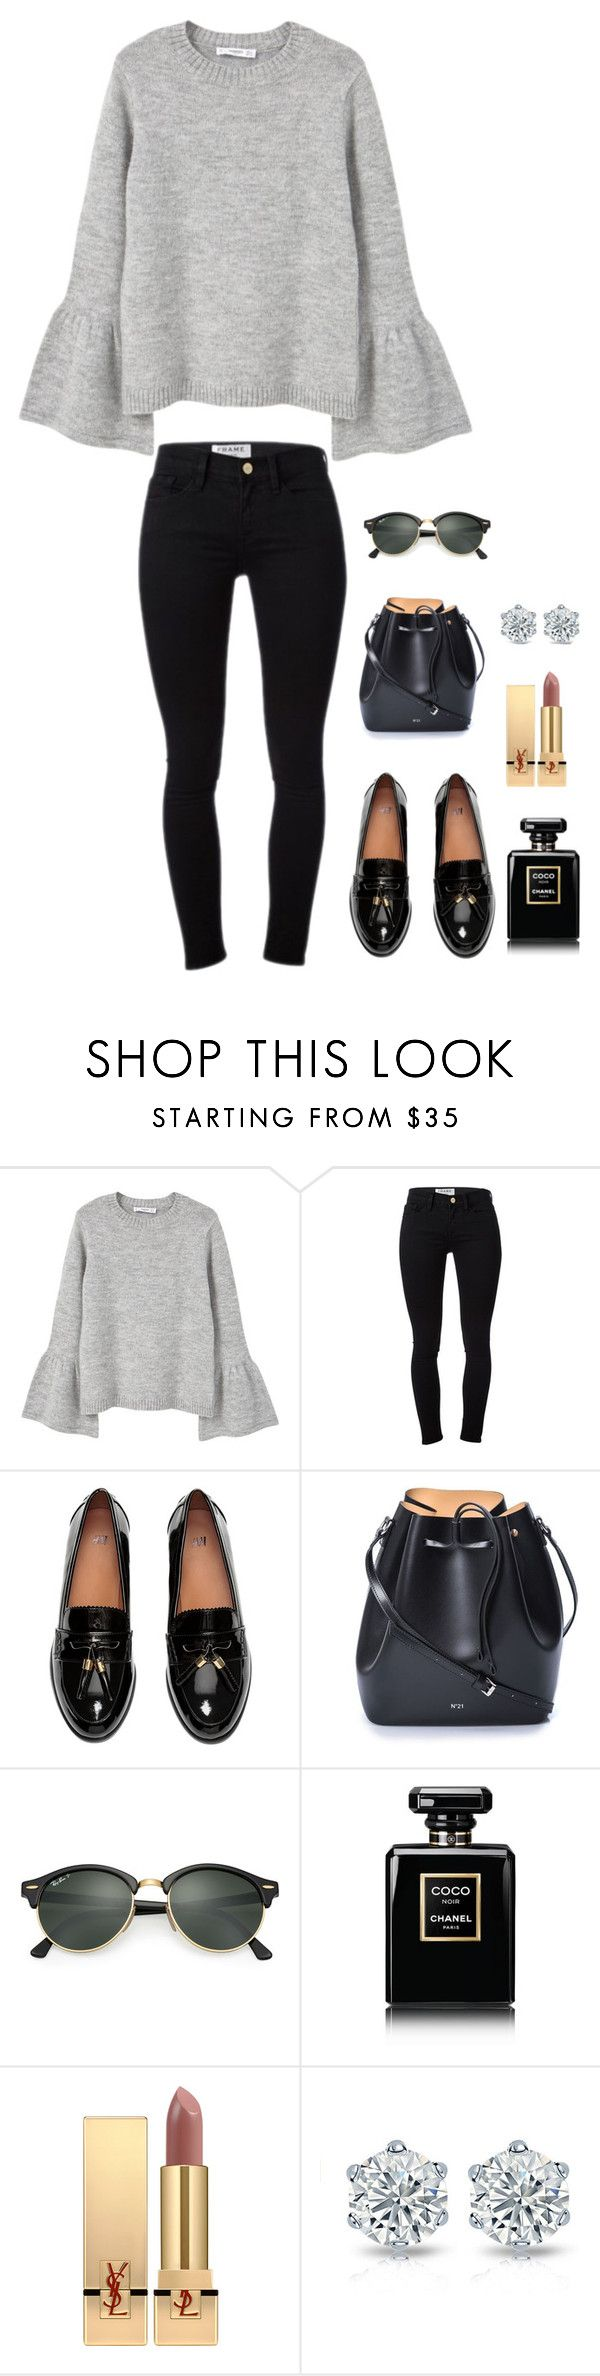 """Untitled #975"" by h1234l on Polyvore featuring MANGO, Frame Denim, N°21, Ray-Ban, Chanel and Yves Saint Laurent"